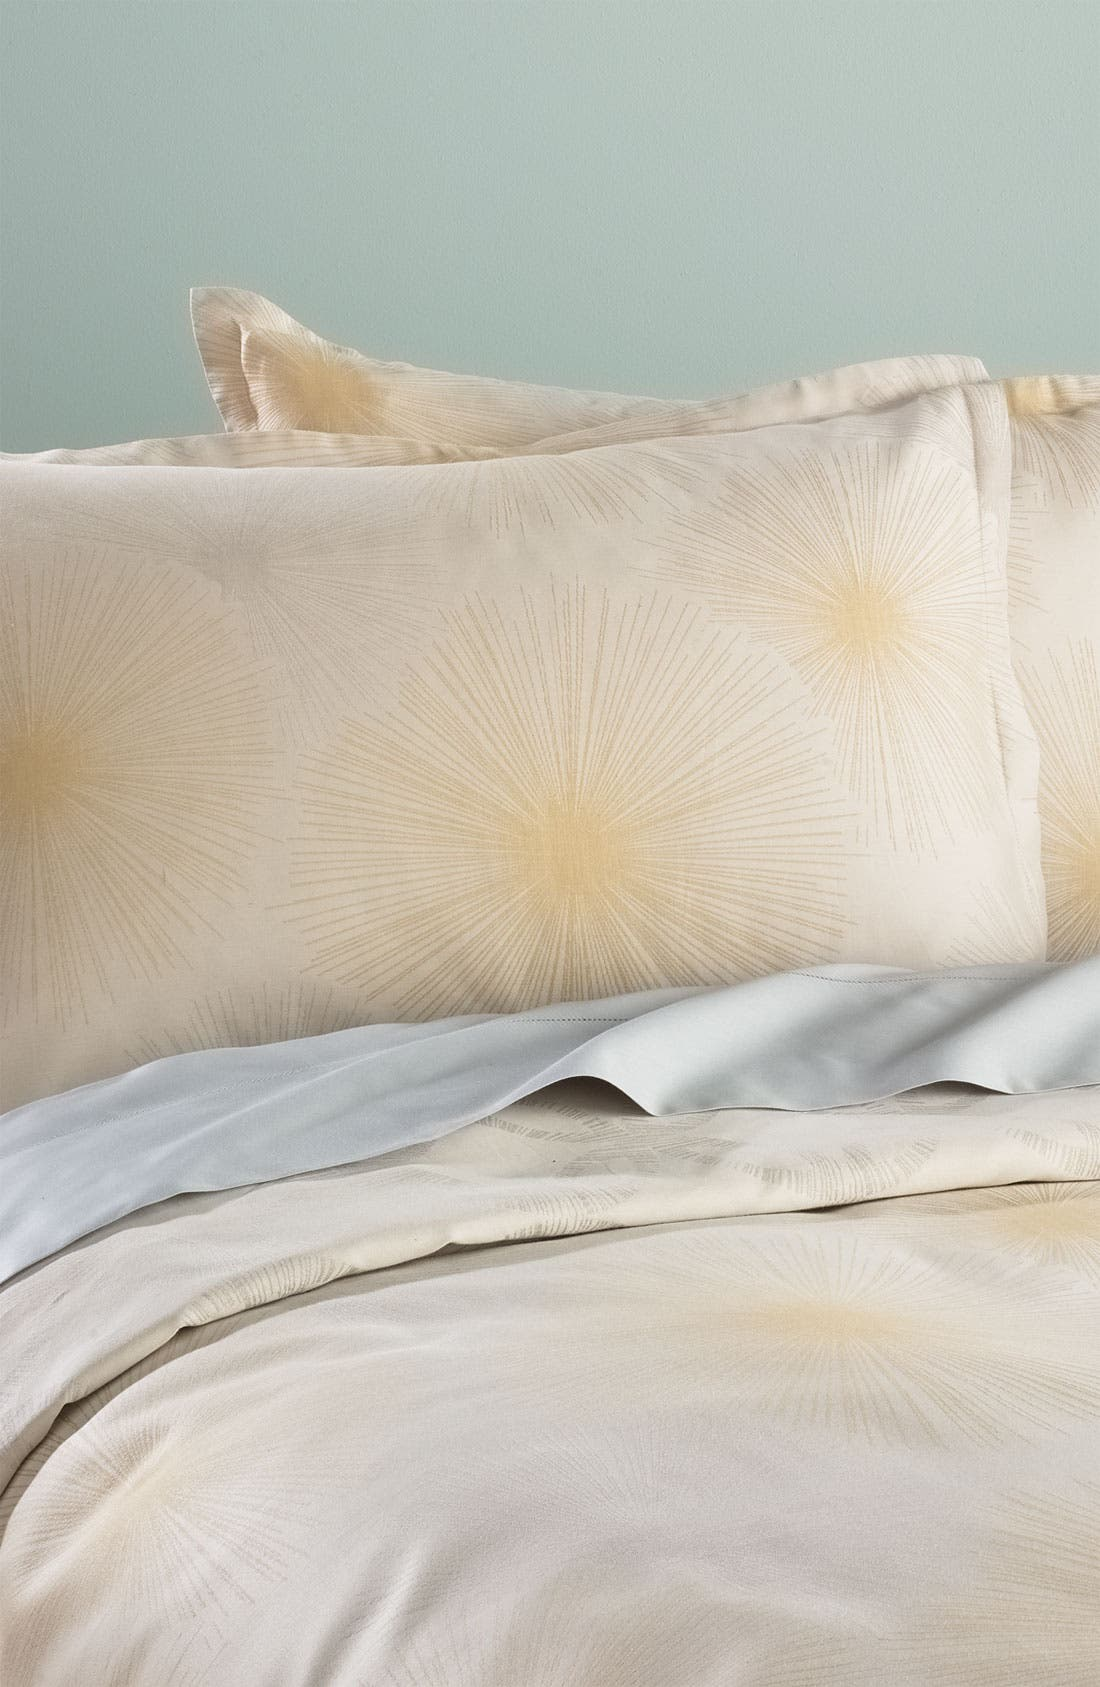 Main Image - Nordstrom at Home 'Sunburst' Sham